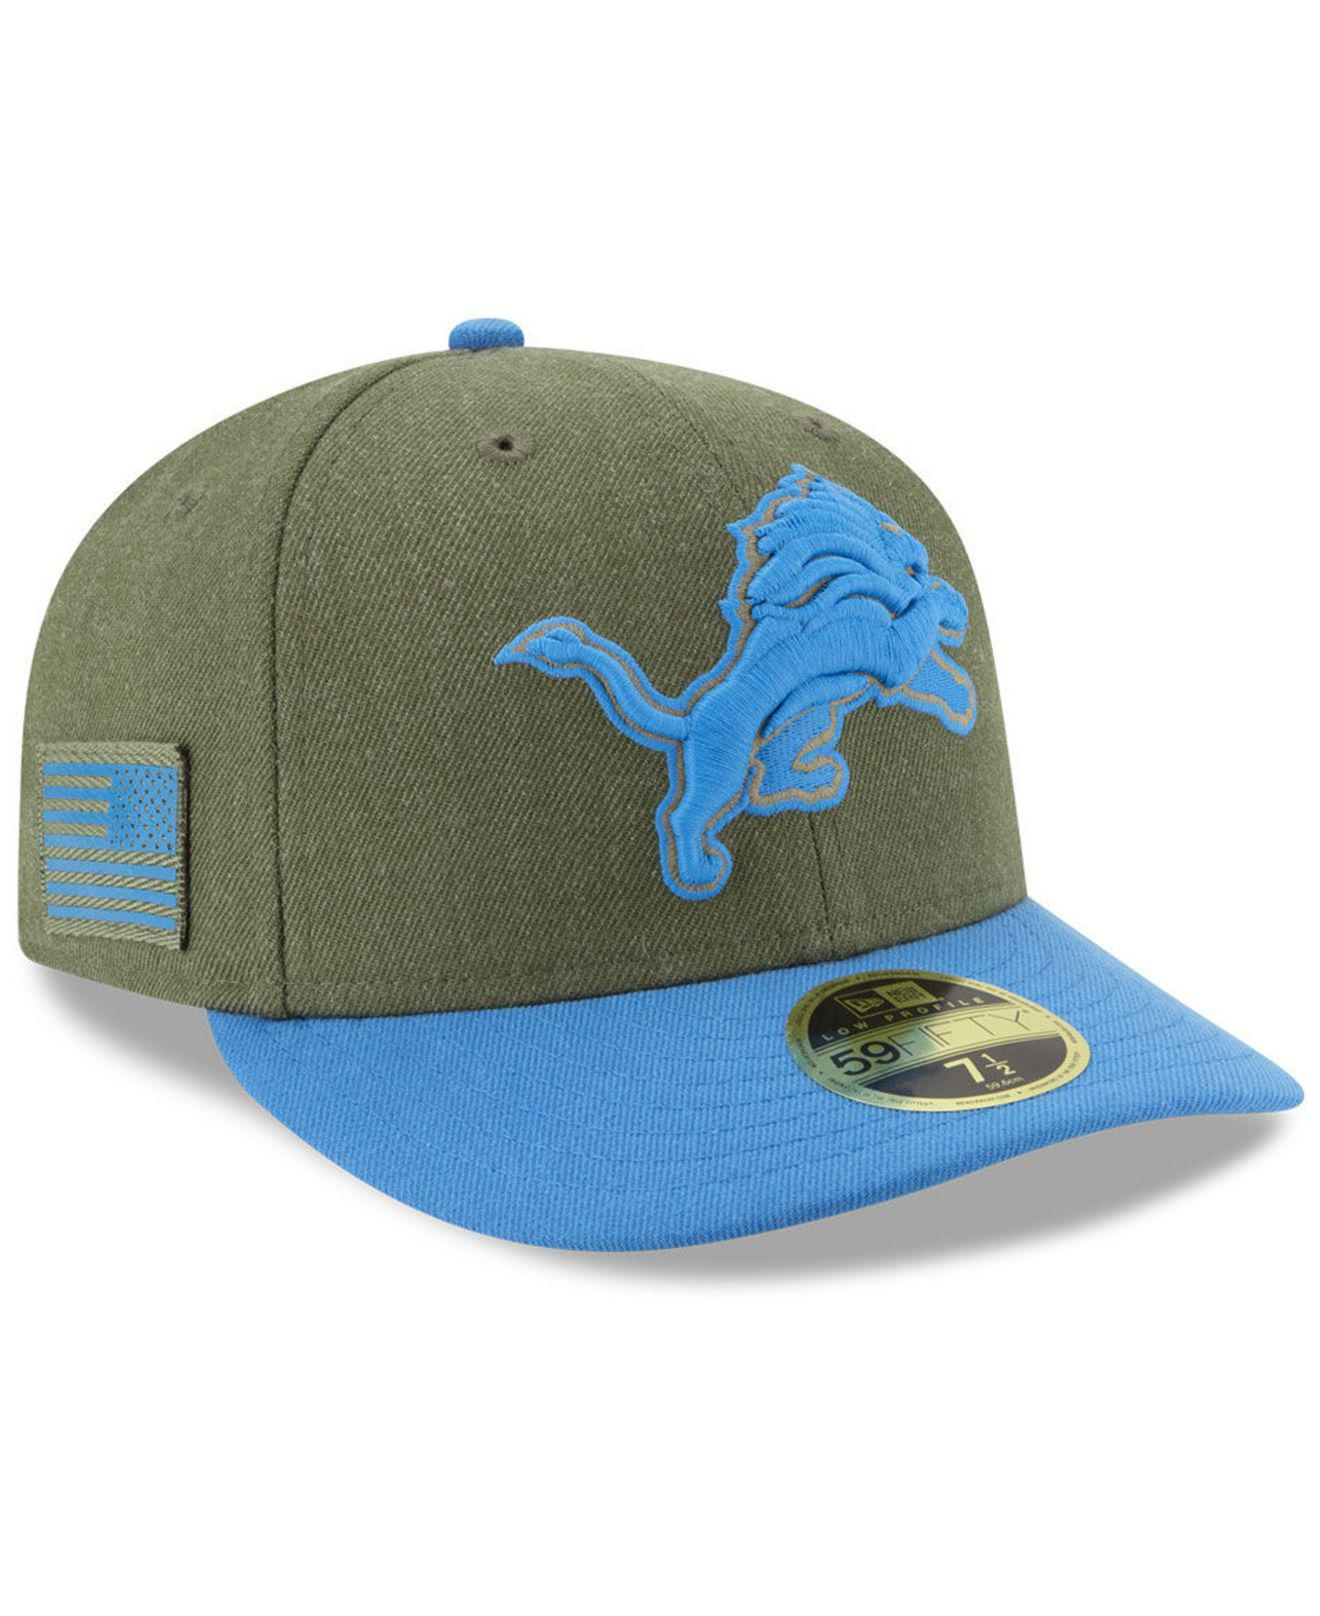 Lyst - KTZ Detroit Lions Salute To Service Low Profile 59fifty ... a0a1707a8